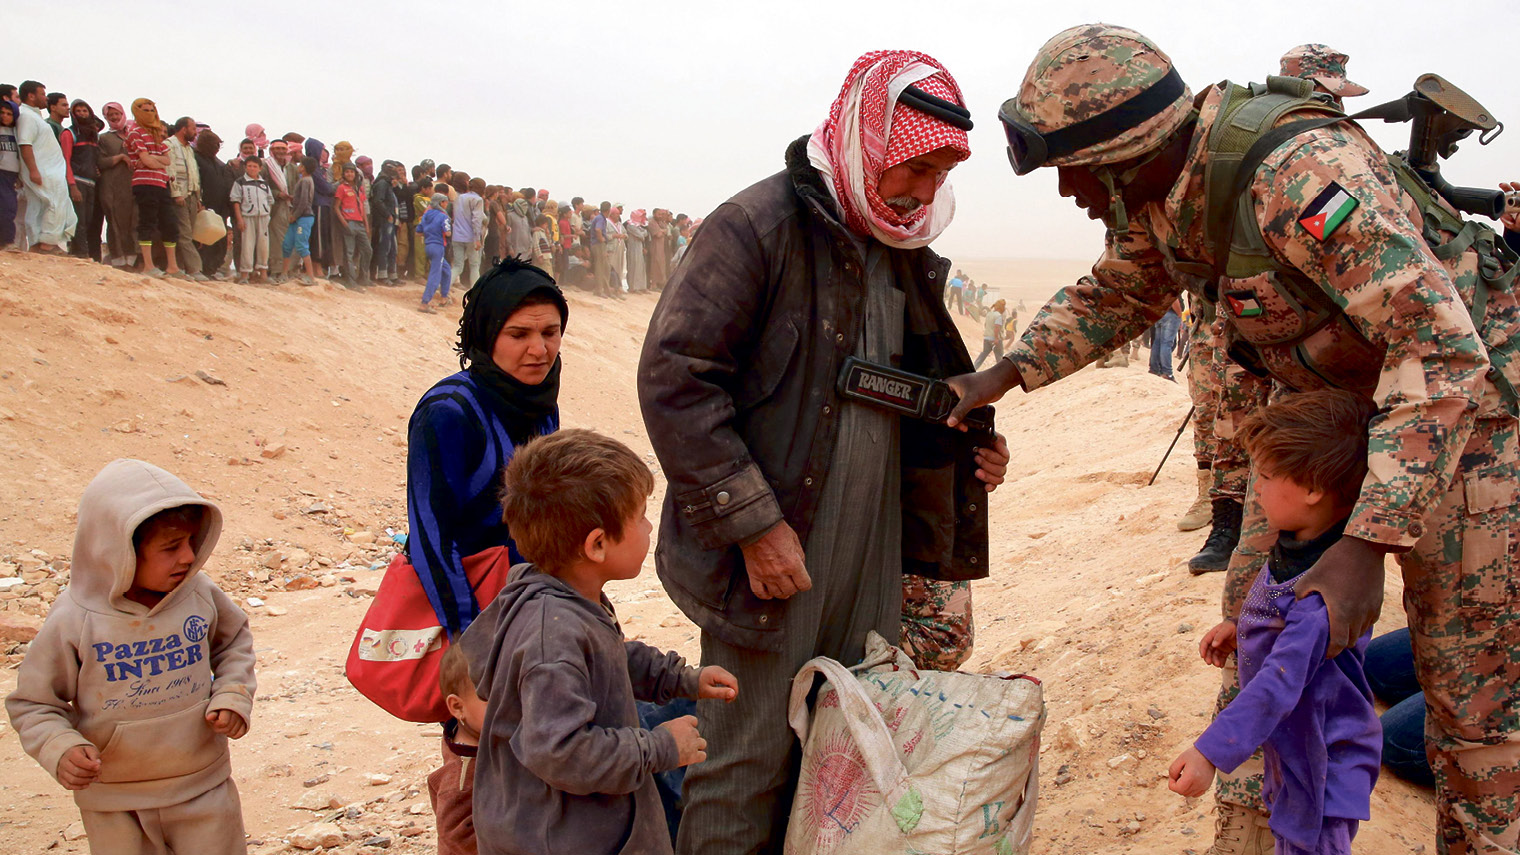 A Jordanian soldier scans newly arrived Syrian refugees as they wait to cross the border - KHALIL MAZRAAWI/AFP/Getty Images